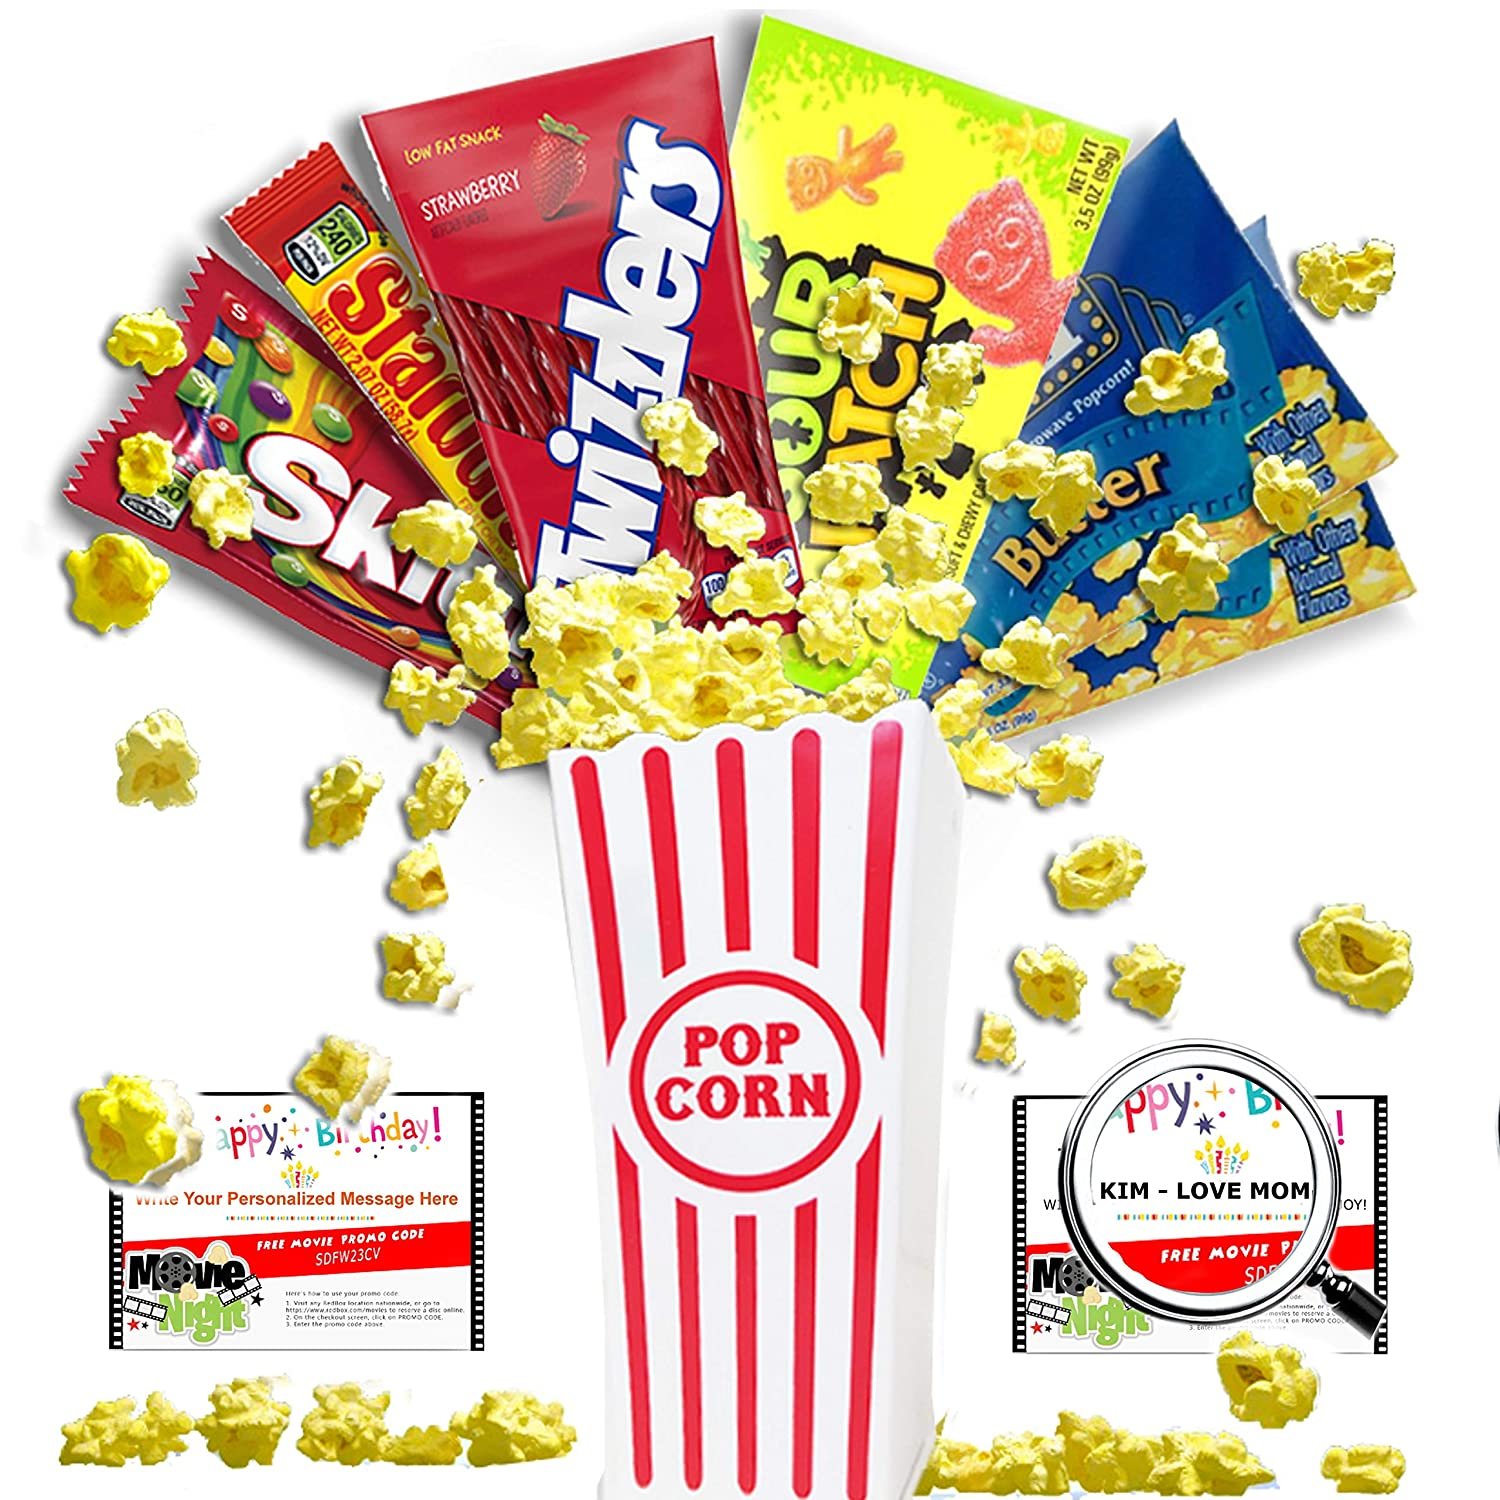 Amazon Happy Birthday Customized Movie Night Gift Basket Includes Butter Popcorn Concession Stand Candy And A Card For 2 Free RedBox